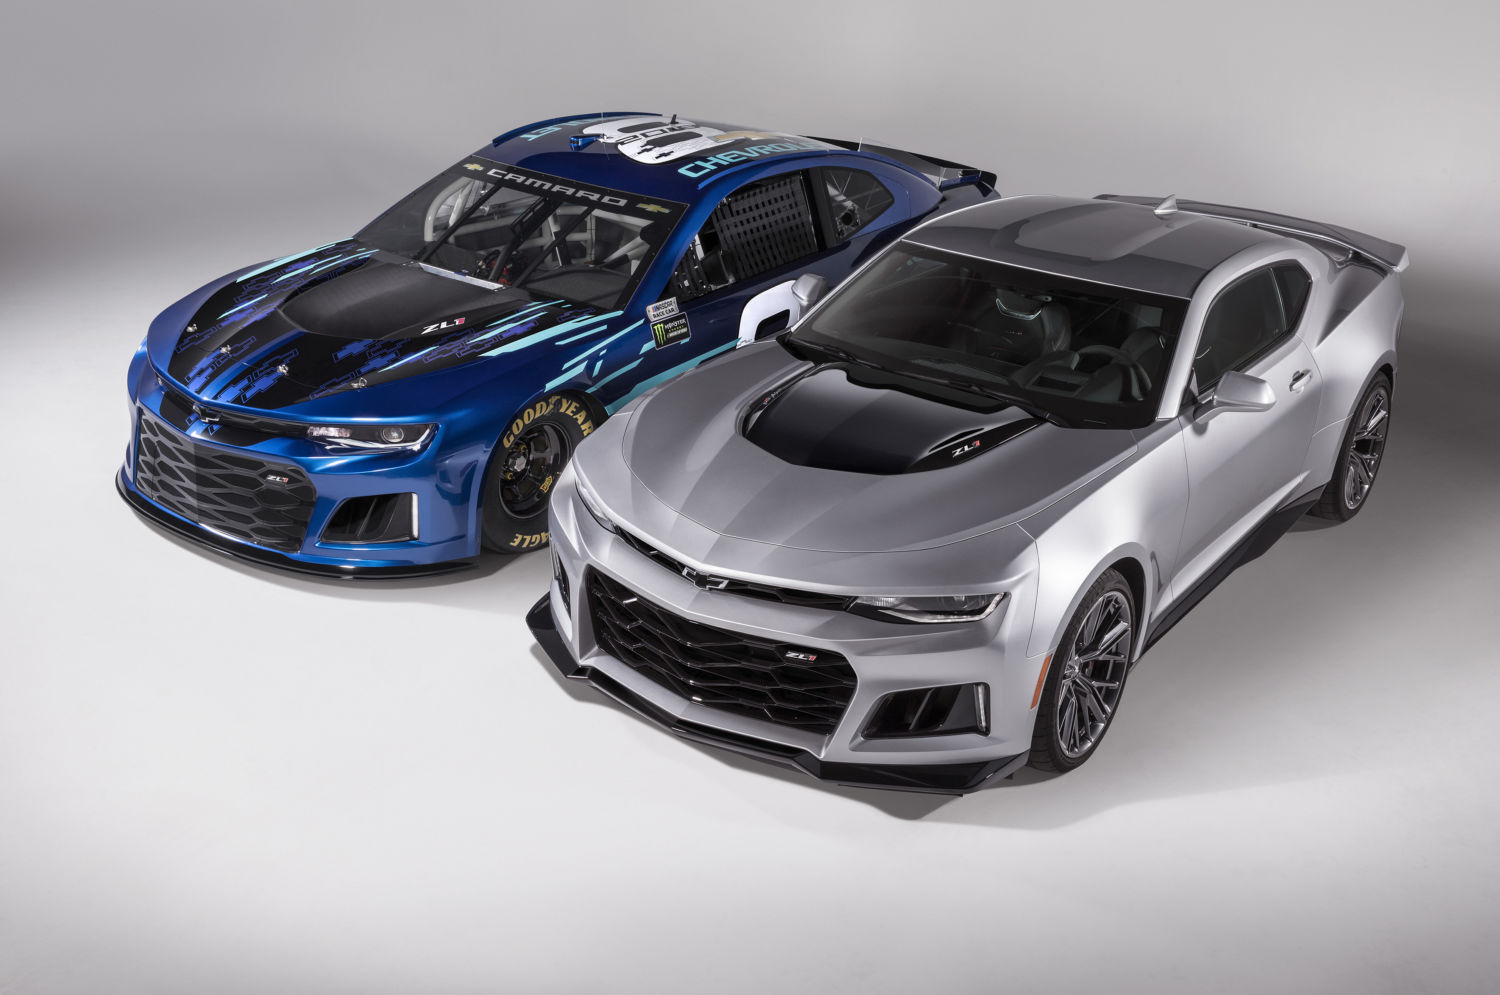 2018 chevrolet camaro zl1. fine zl1 chevrolet camaro zl1 nascar cup series throughout 2018 chevrolet camaro zl1 c